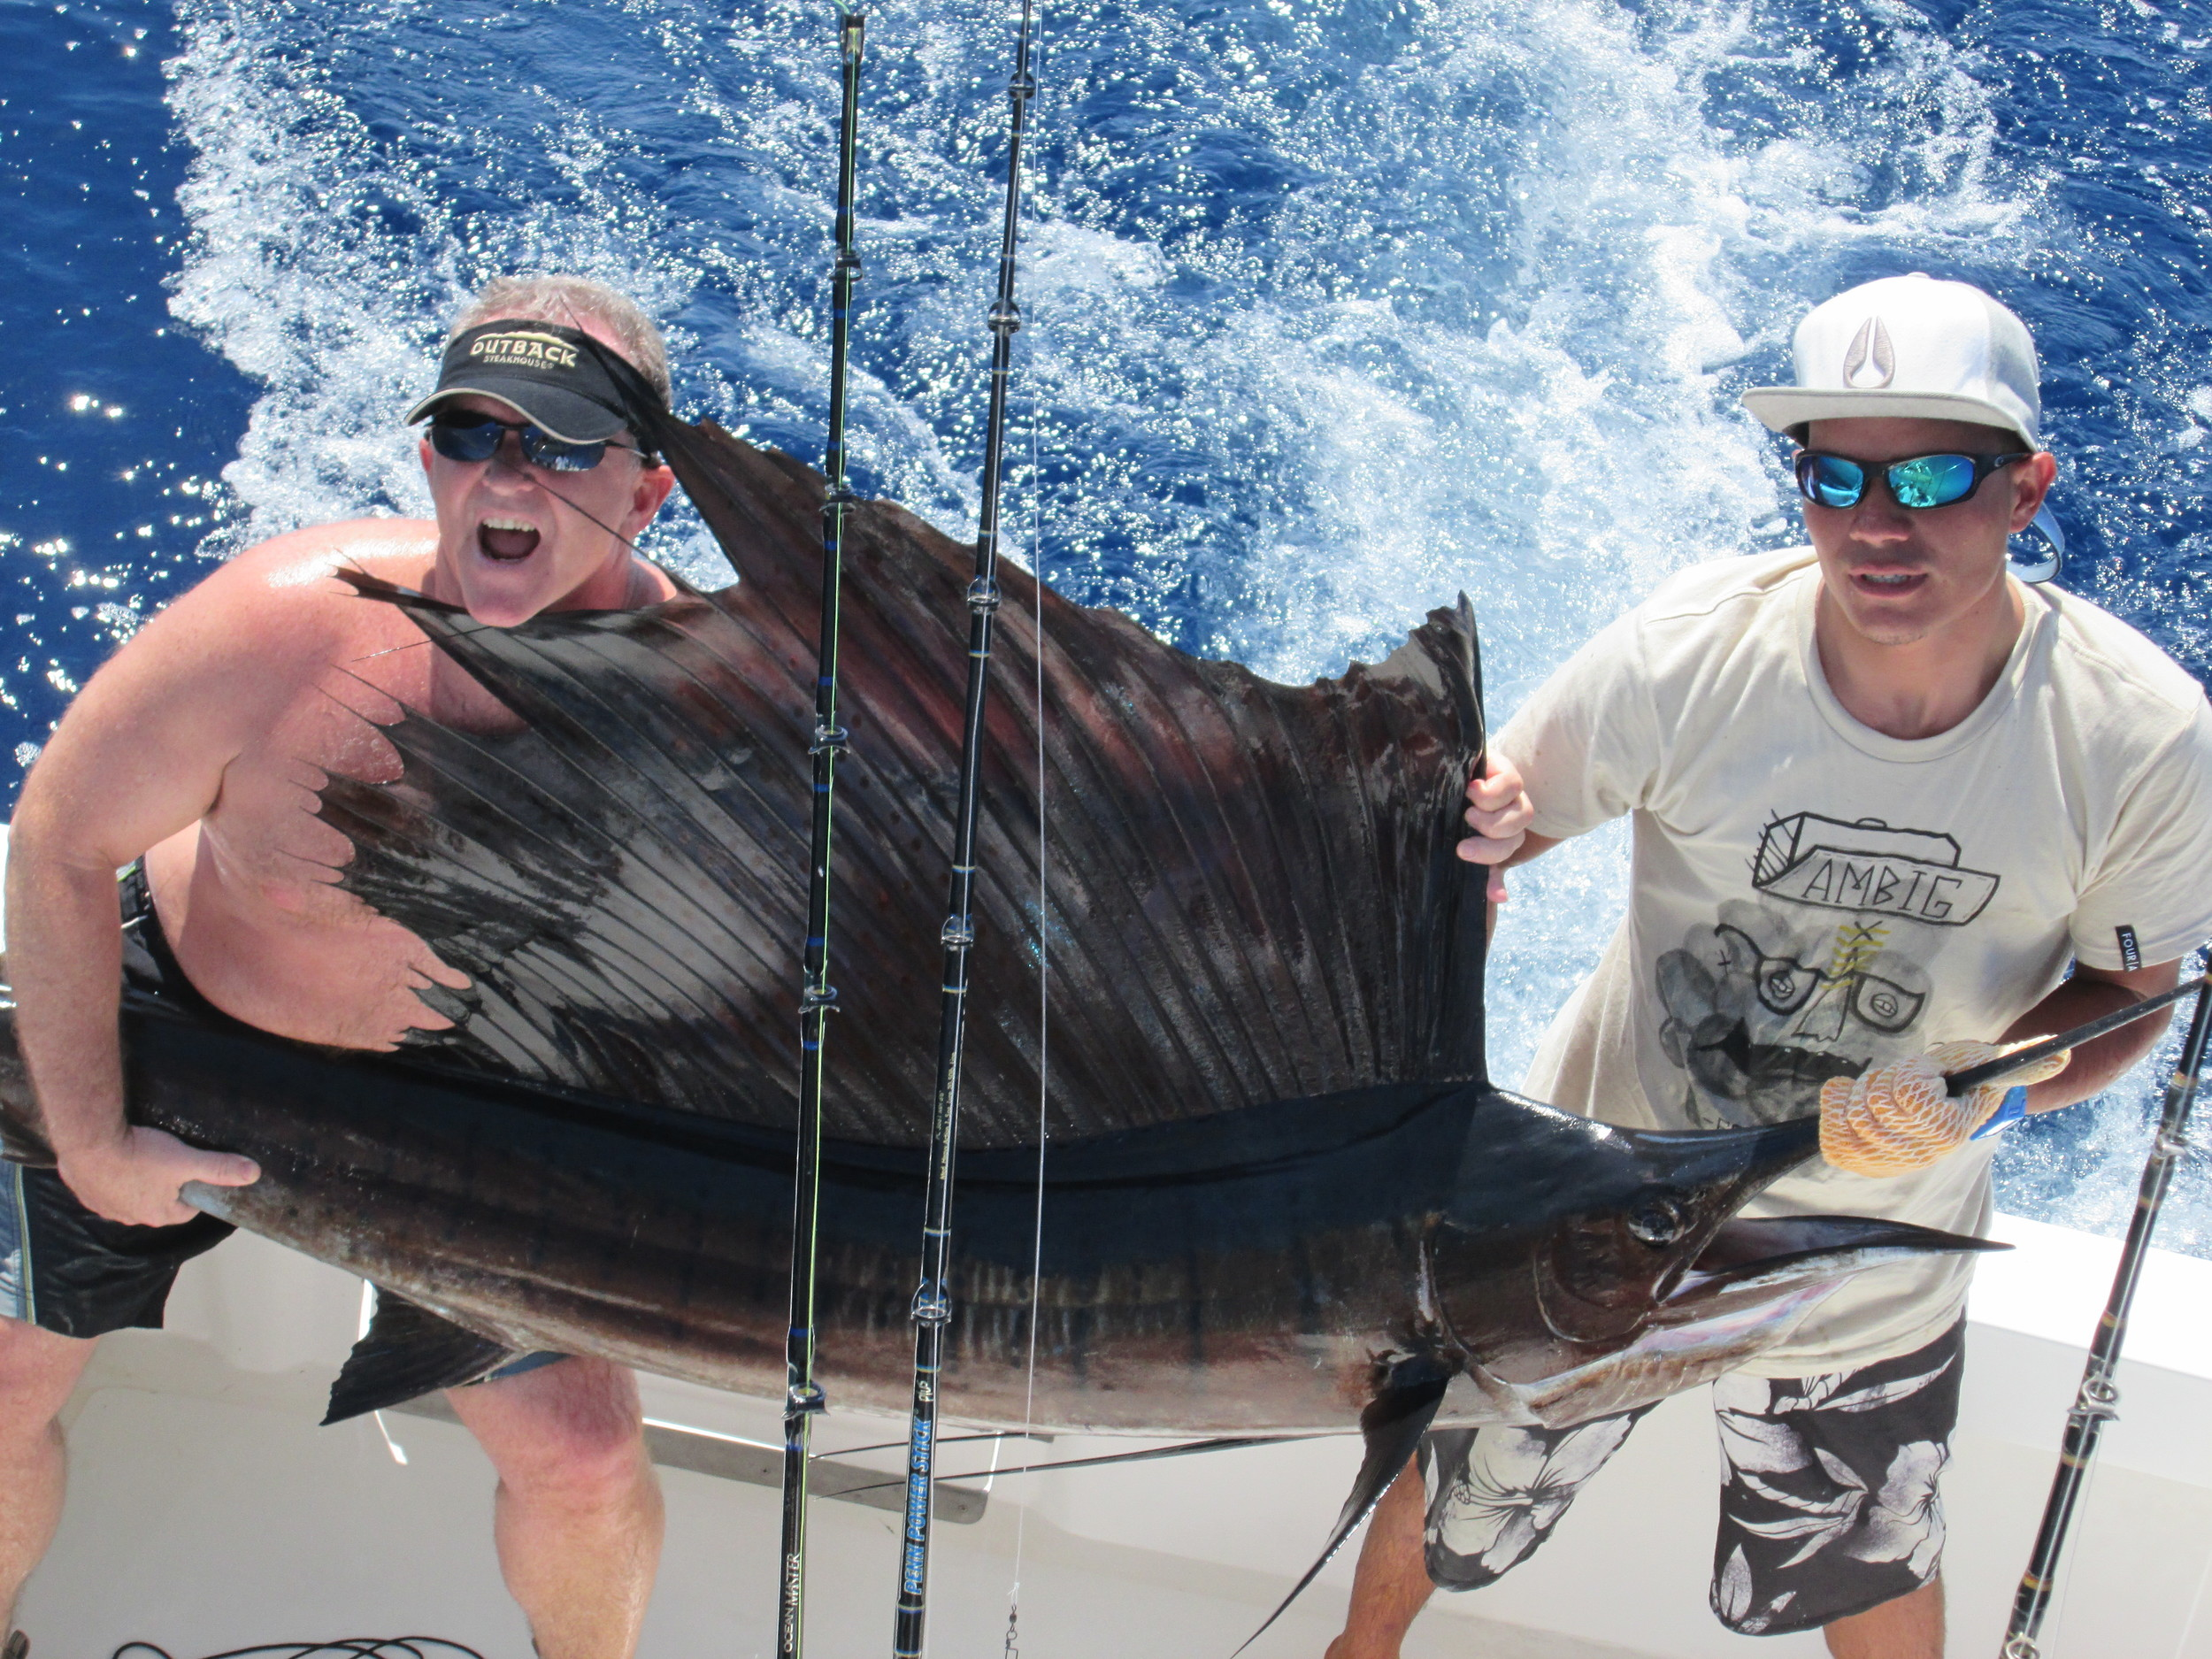 Brian Treece, Johnny G. and Johnny A. released 5 Sailfish today on their 3rd and final day Offshore here with the MoonWalker.  They are already picking the February Dates for Next Year.